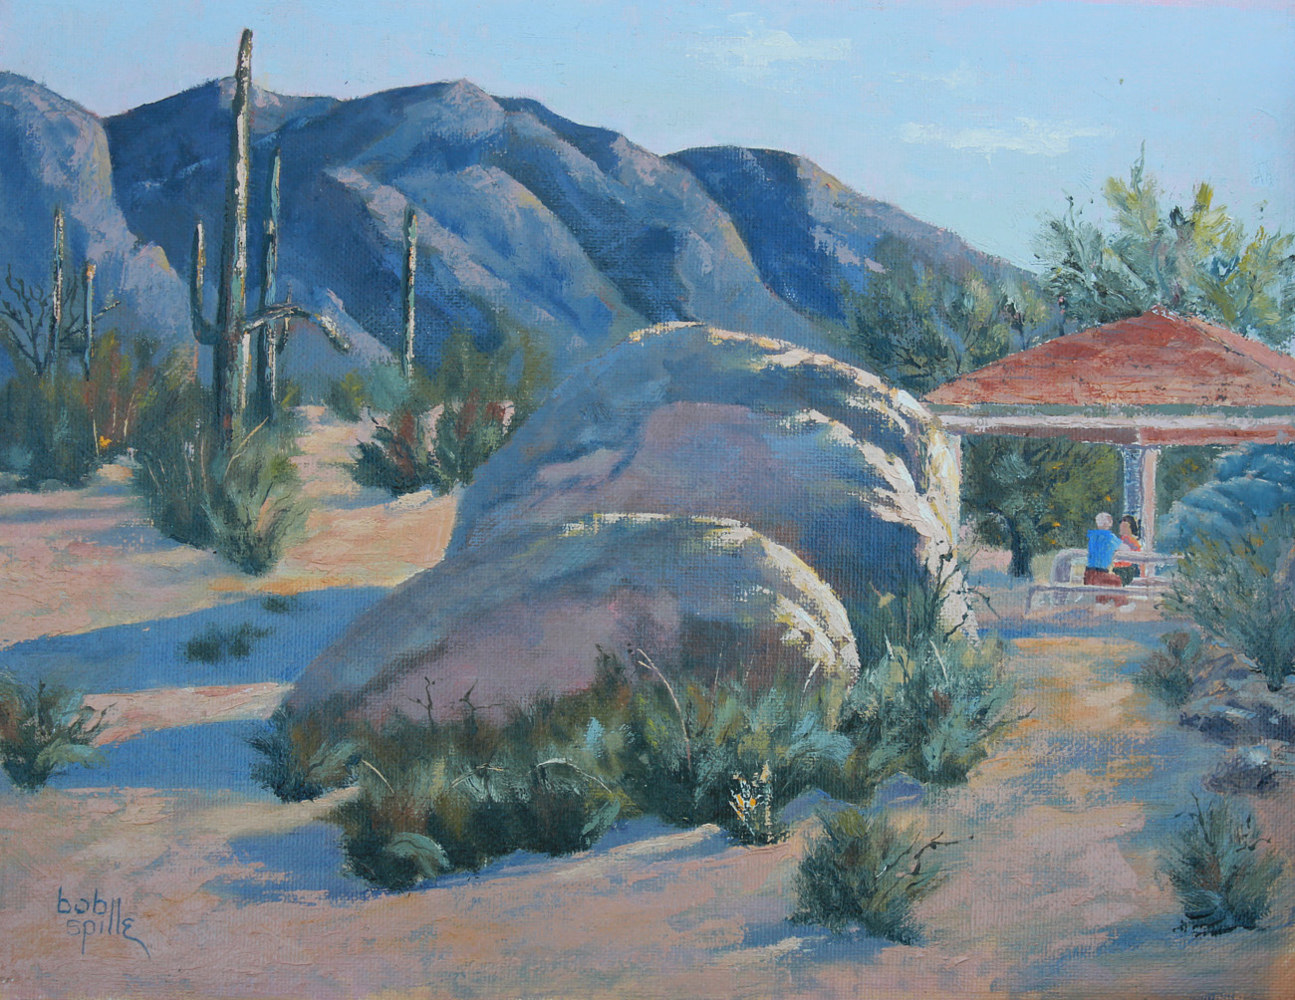 Oil painting Breakfast at North Mountain Park by Bob Spille